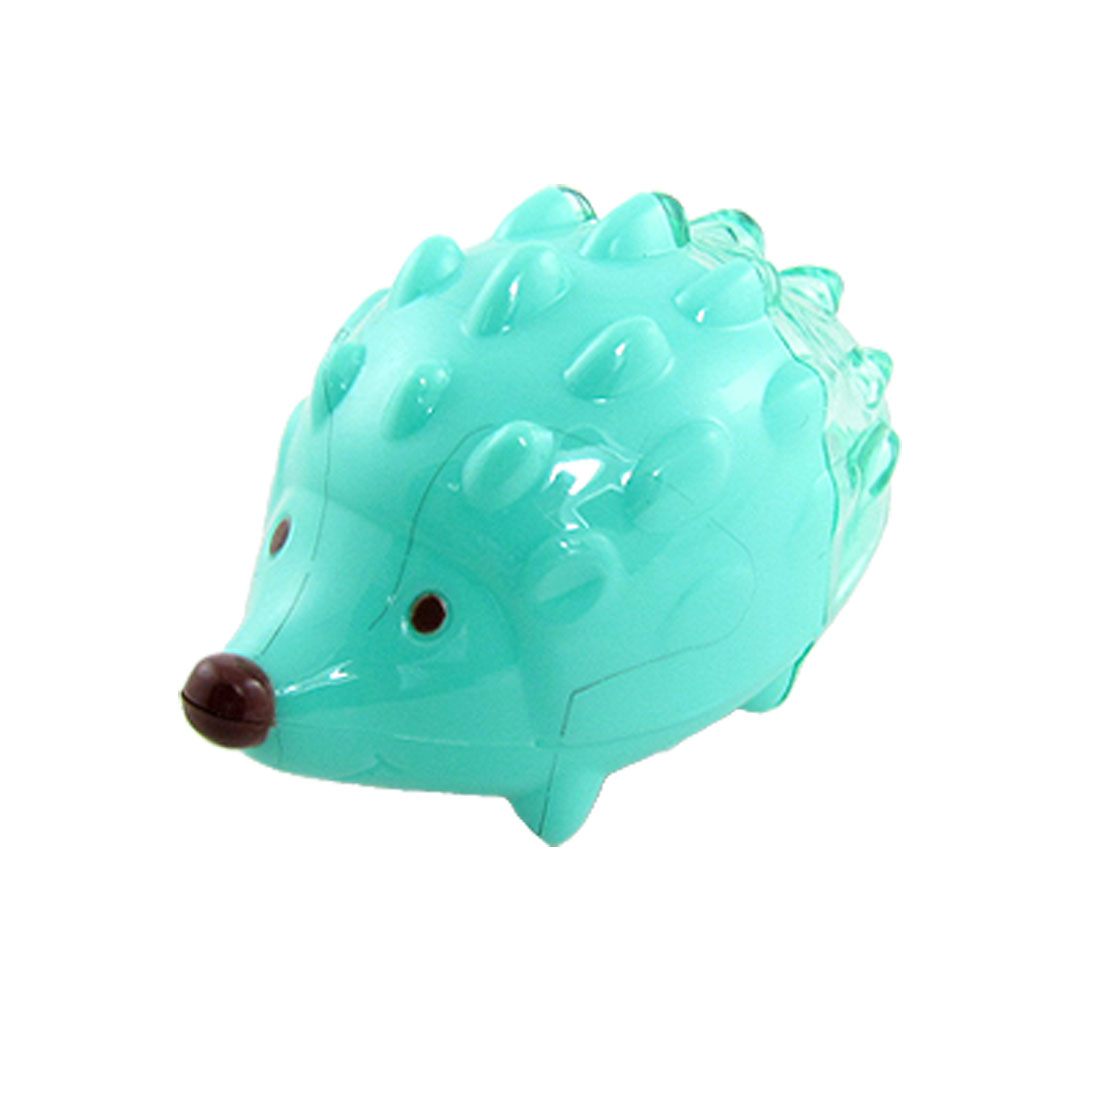 2 Pcs Green Double Holes Hedgehog Style Pencil Sharpener